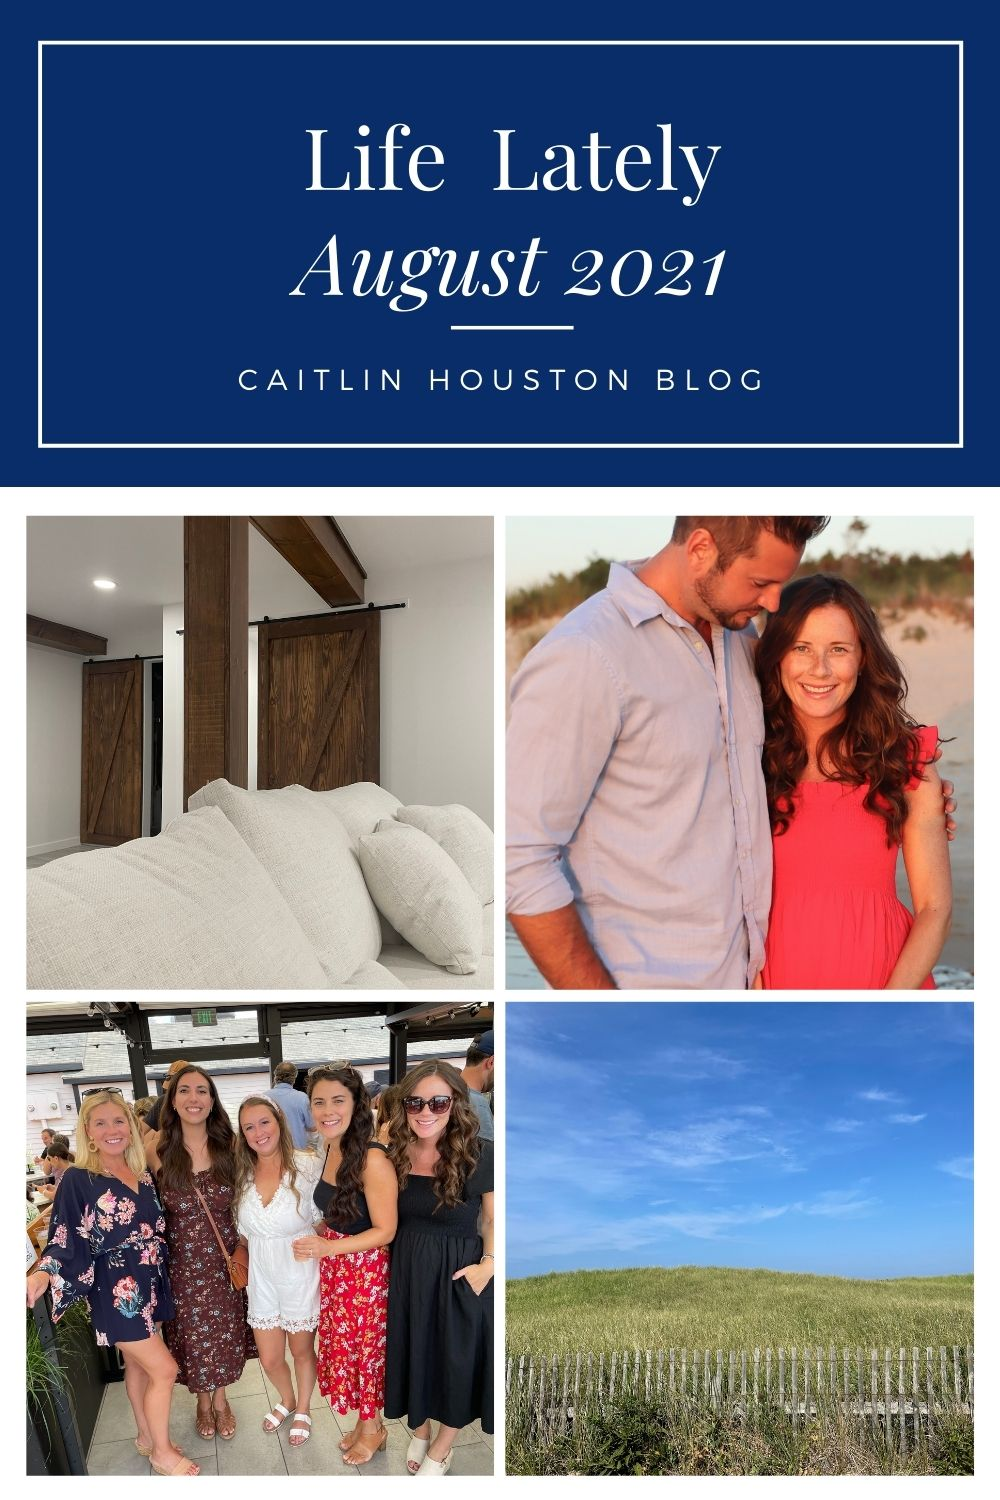 Life Lately in August 2021 by Caitlin Houston Blog